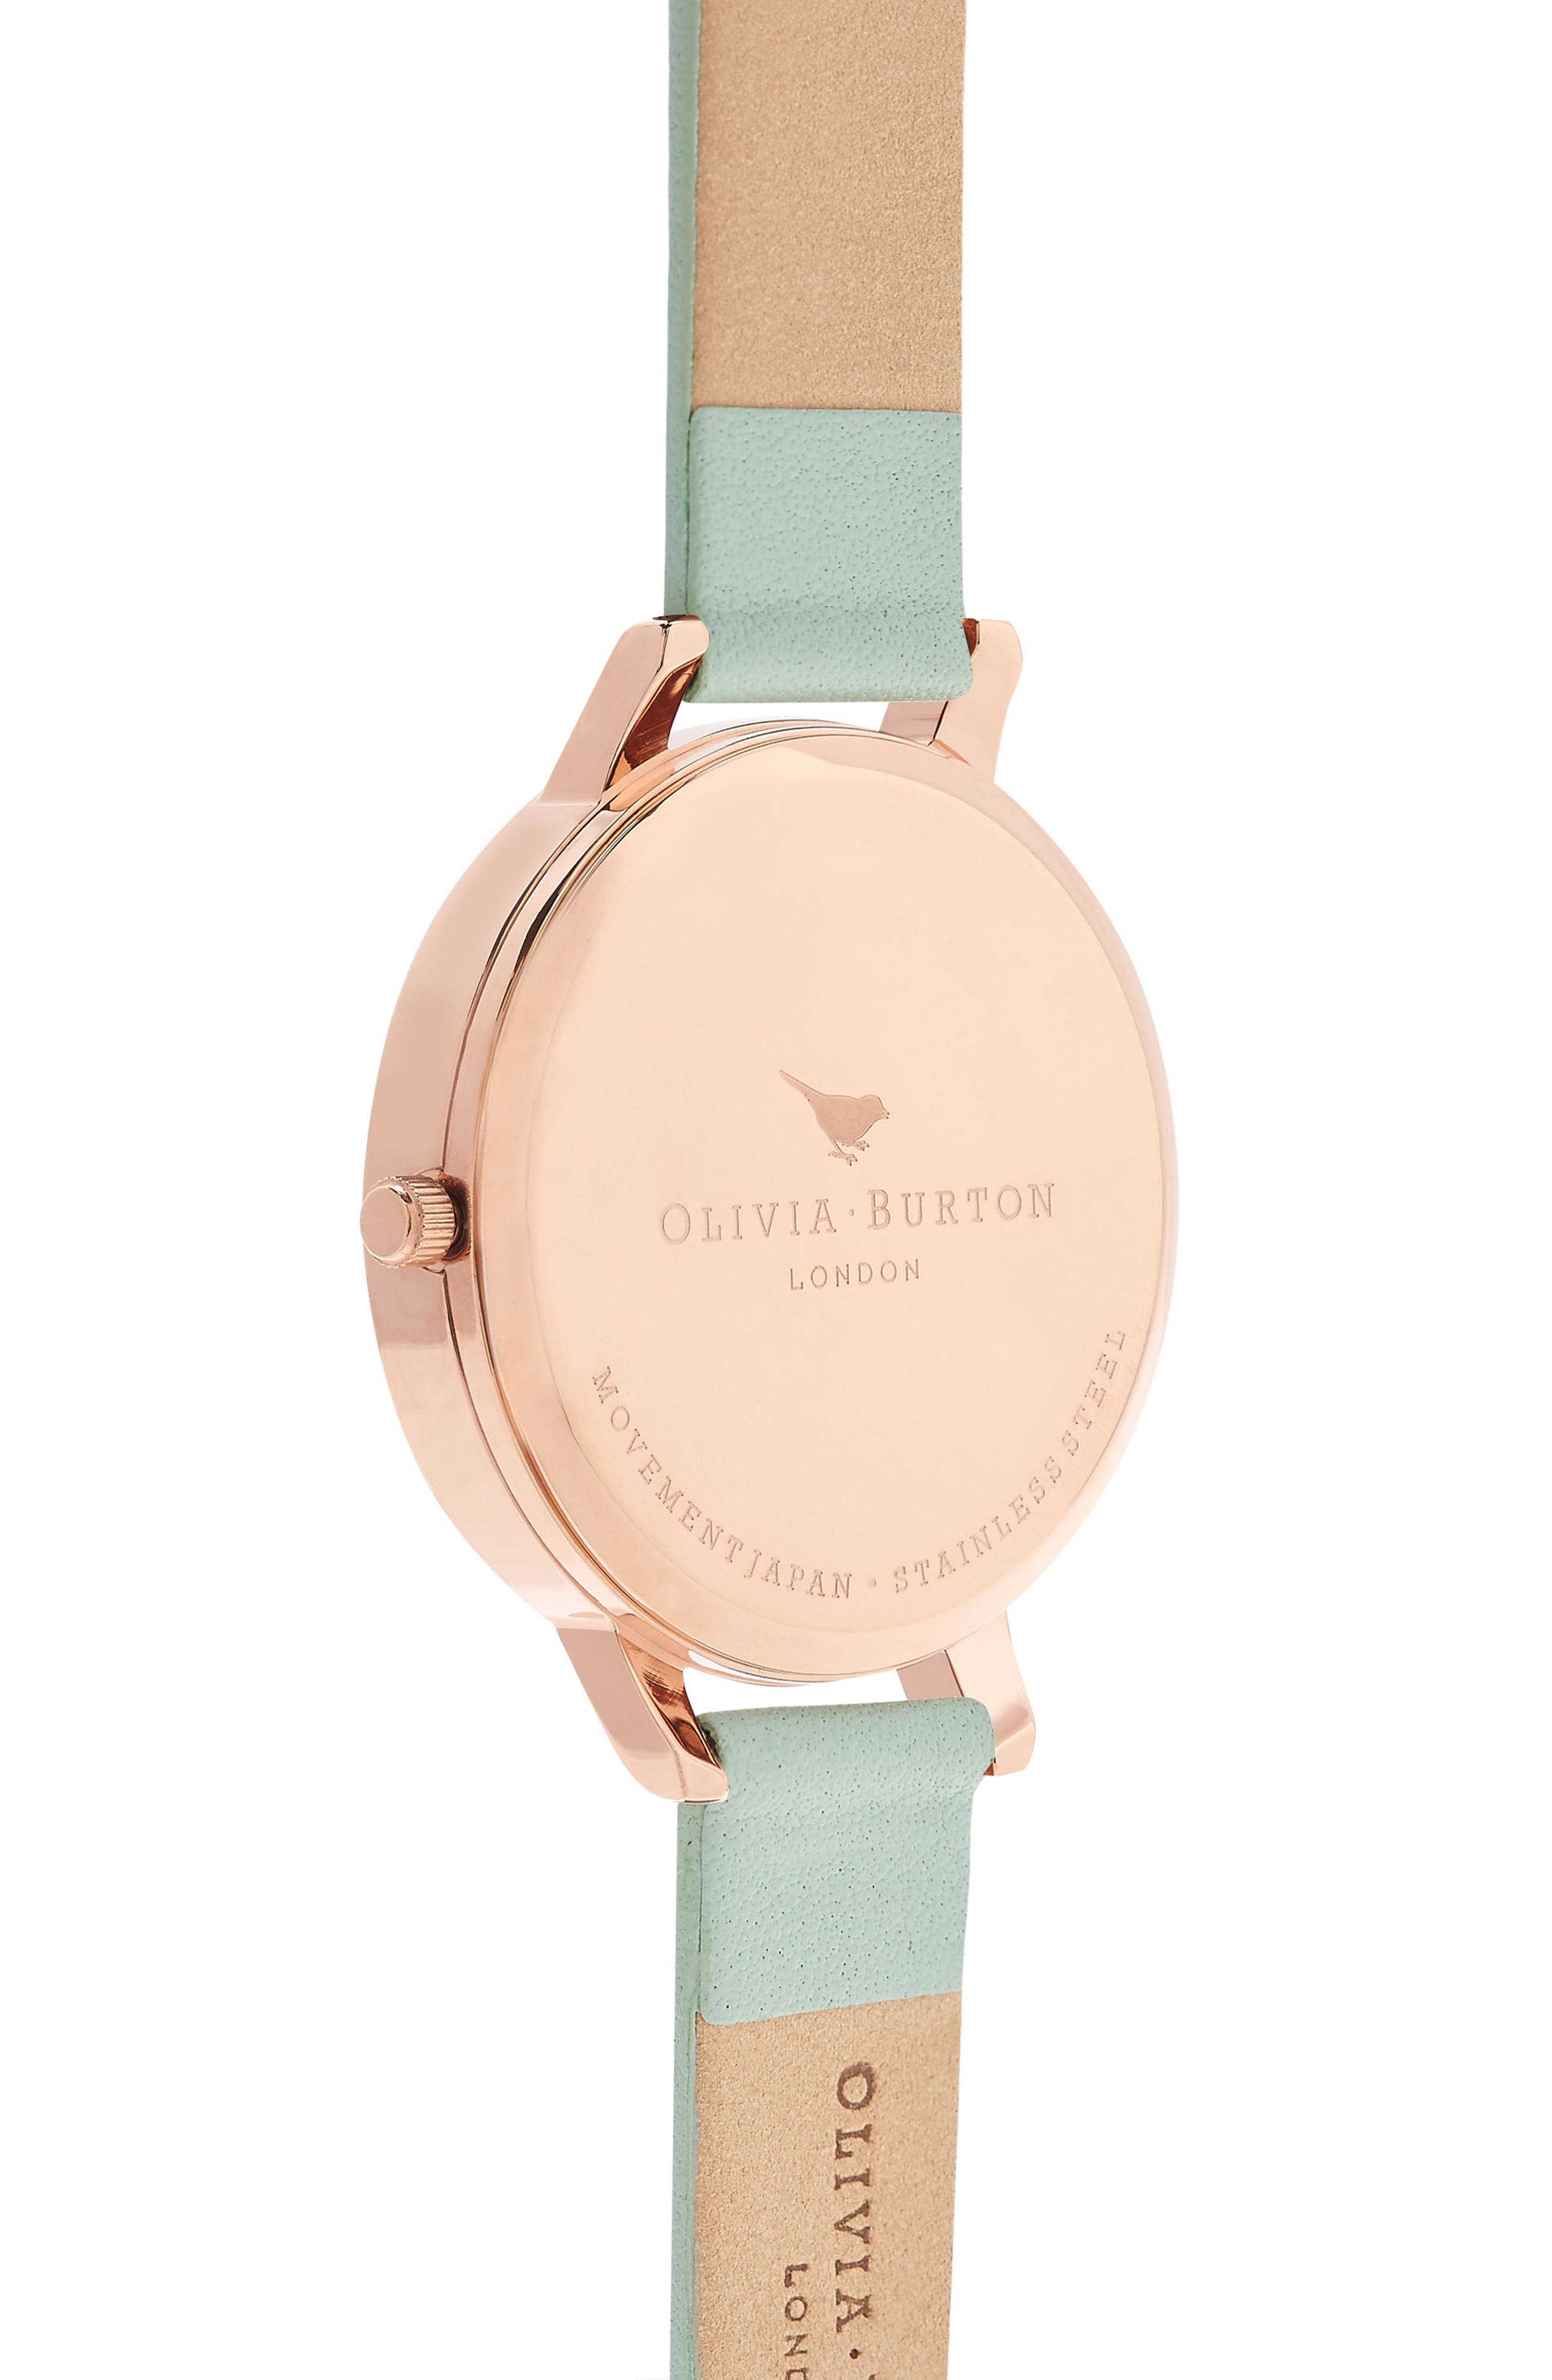 Enchanted Garden Leather Strap Watch, 38mm,                             Alternate thumbnail 3, color,                             Mint/ Floral/ Rose Gold